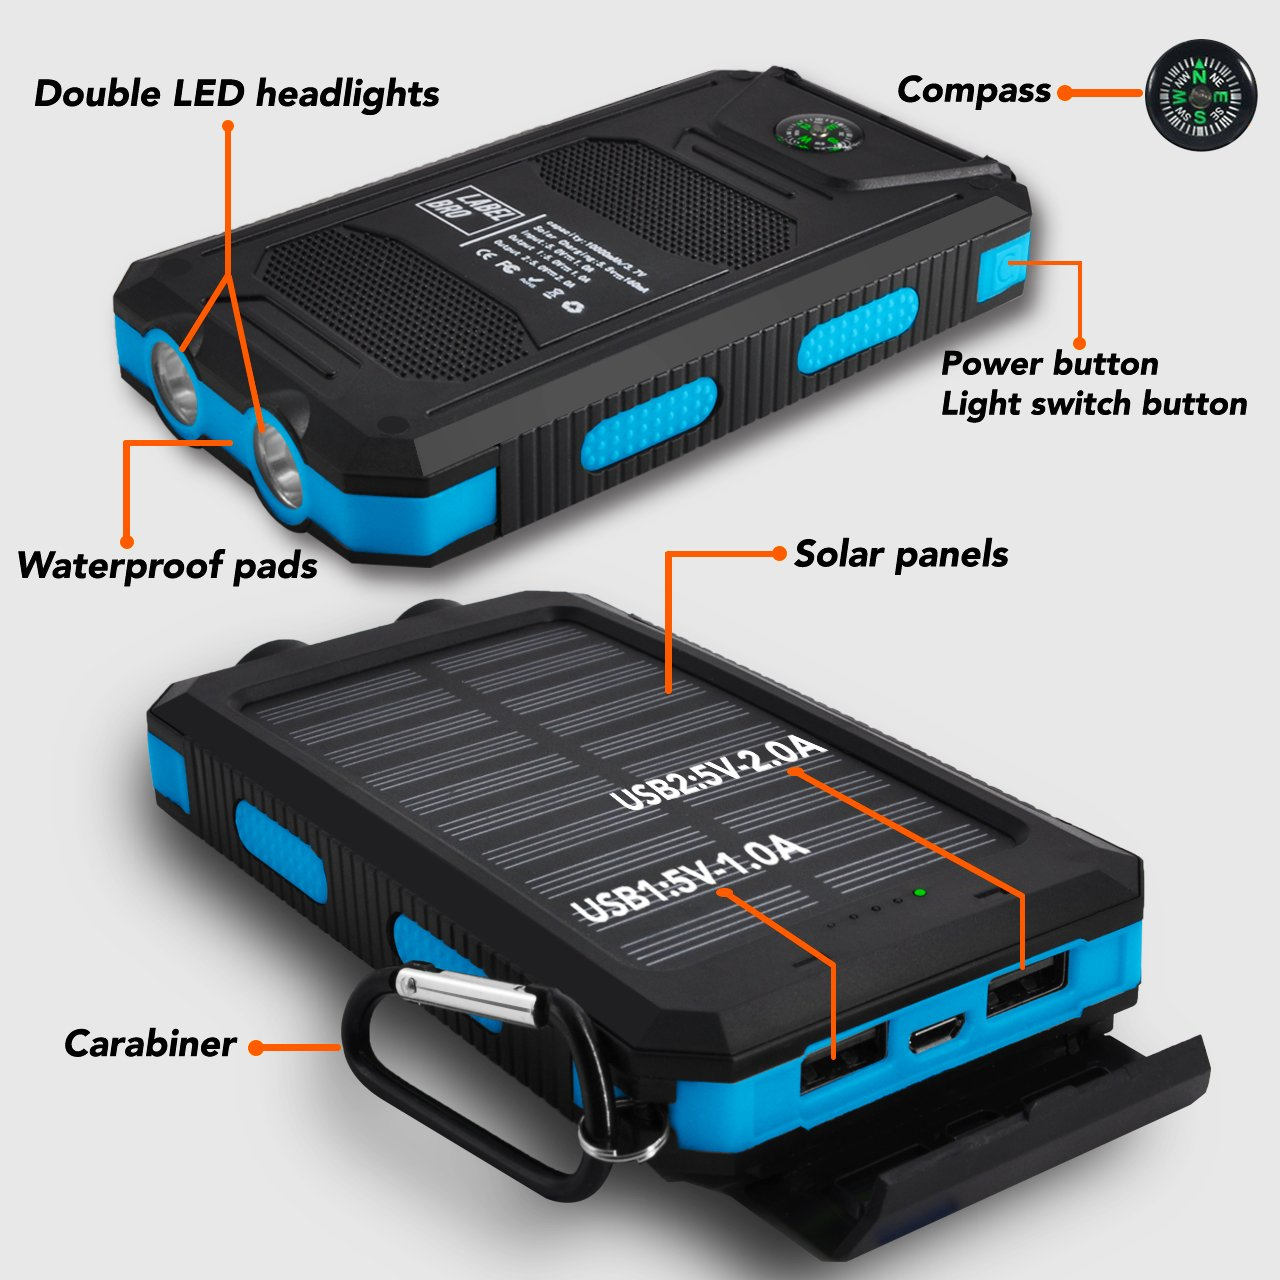 Solar Portable Charger, LabelBro Solar Battery 10000mAh Battery, Waterproof, Solar Charge, Dual LED Headlamp, Portable Compass, Outdoor Travel Solar Mobile Power, Home, Emergency (blue) by LabelBro (Image #3)